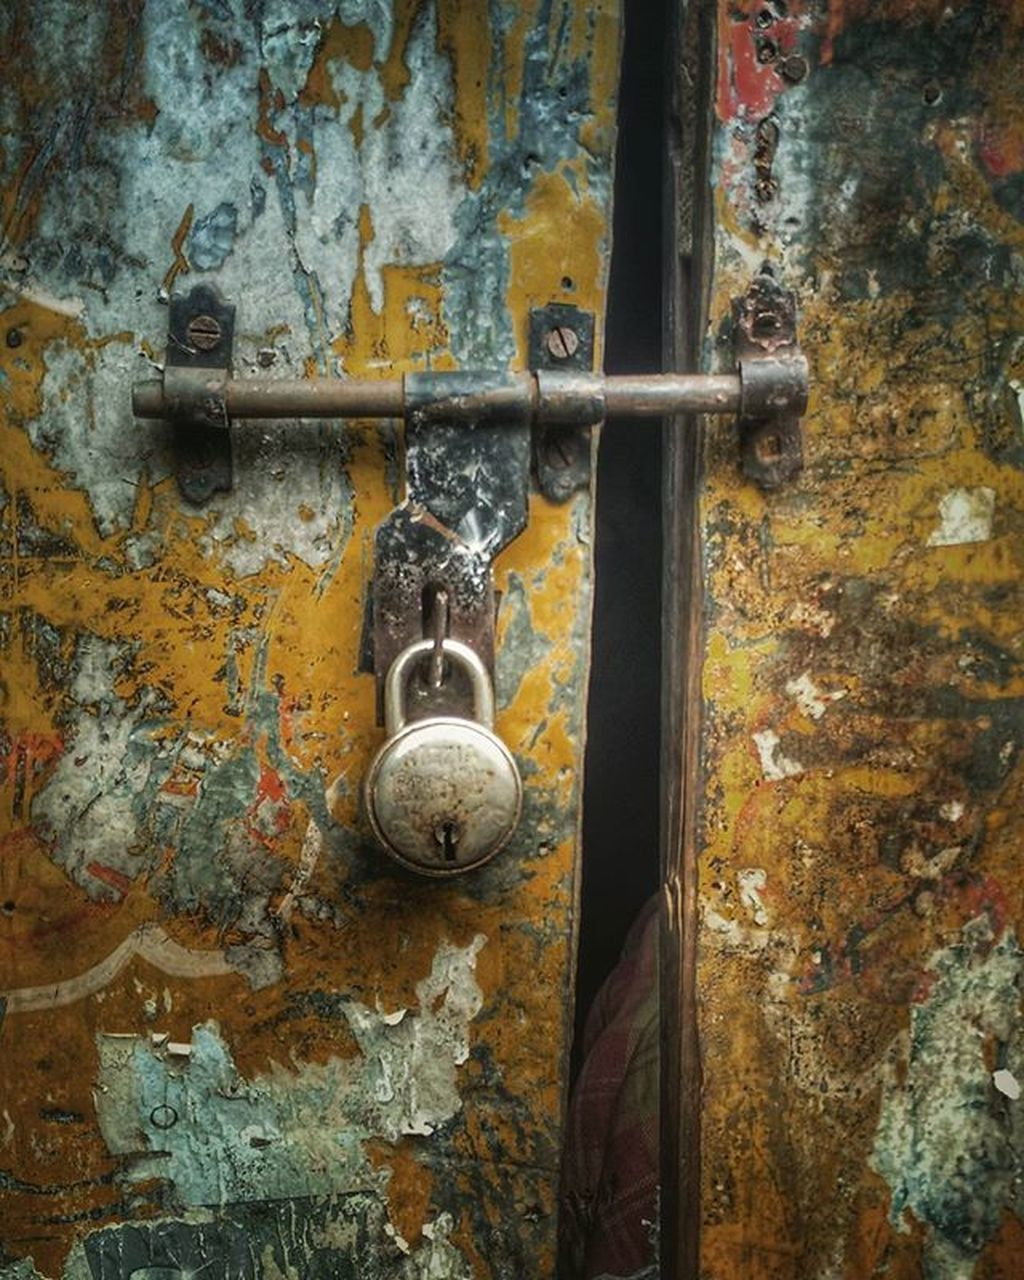 door, close-up, protection, safety, security, metal, no people, door handle, outdoors, full frame, weathered, day, latch, old-fashioned, textured, backgrounds